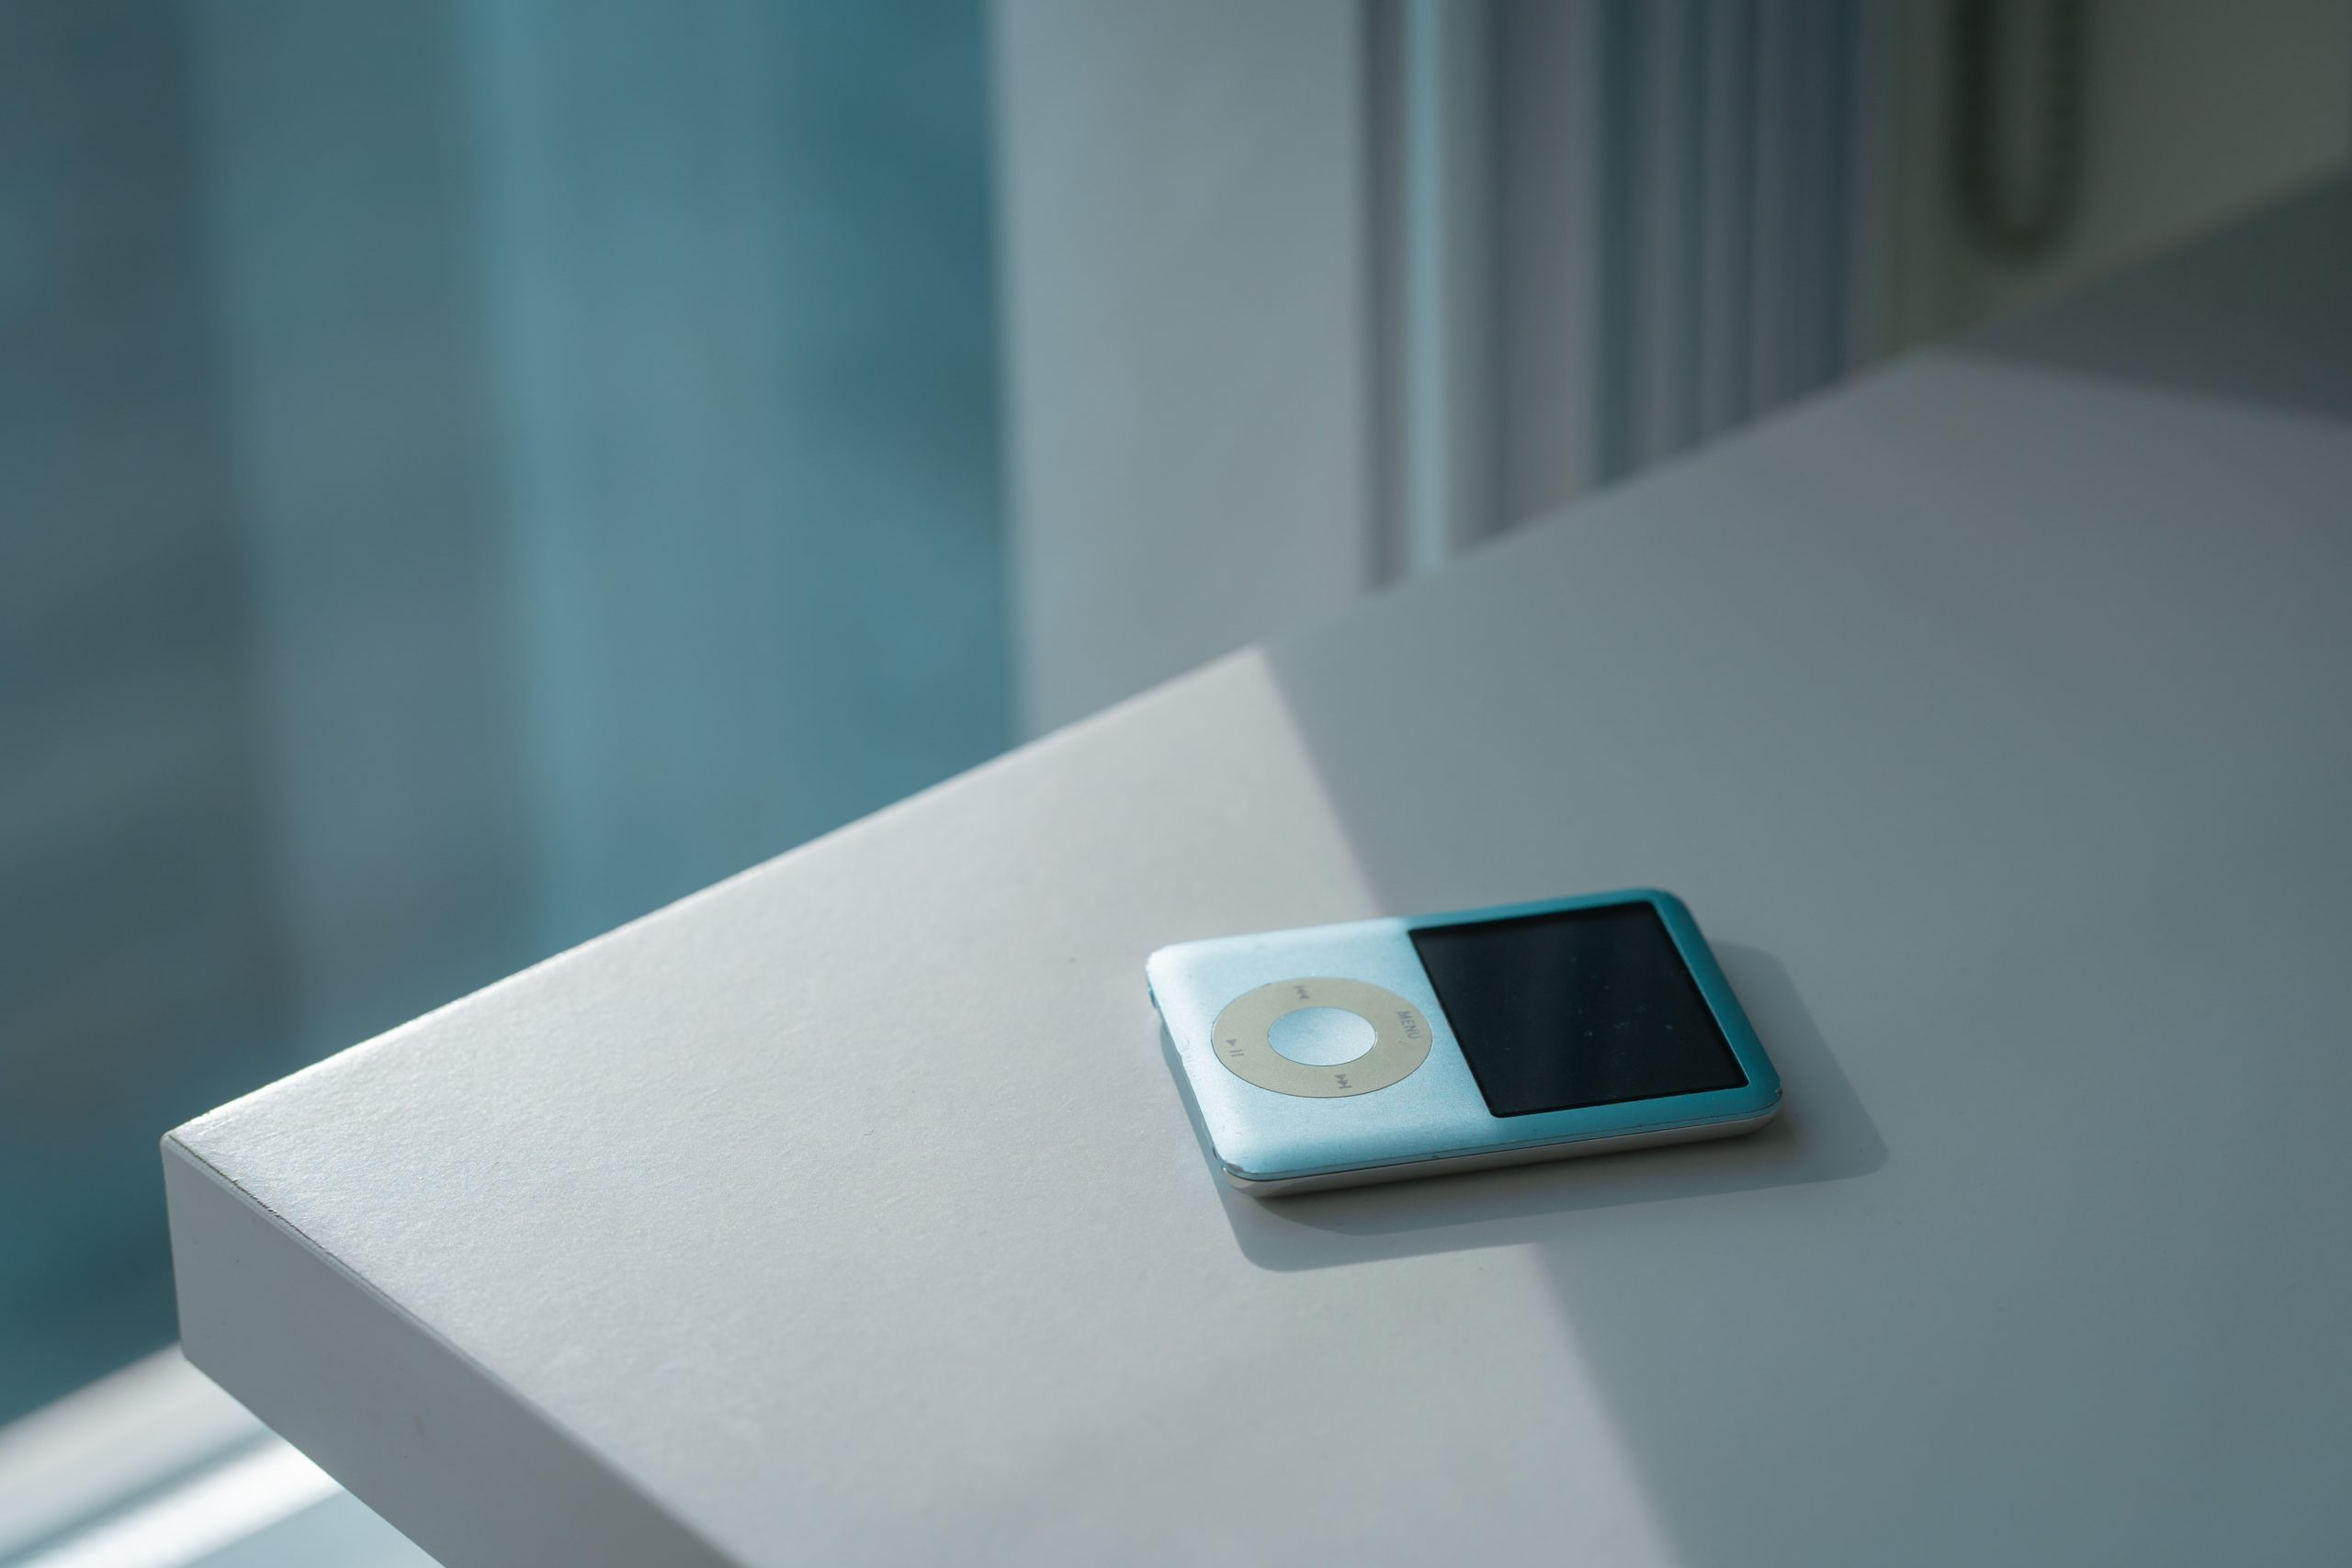 Photo of iPod nano by Ruijia Wang on Unsplash